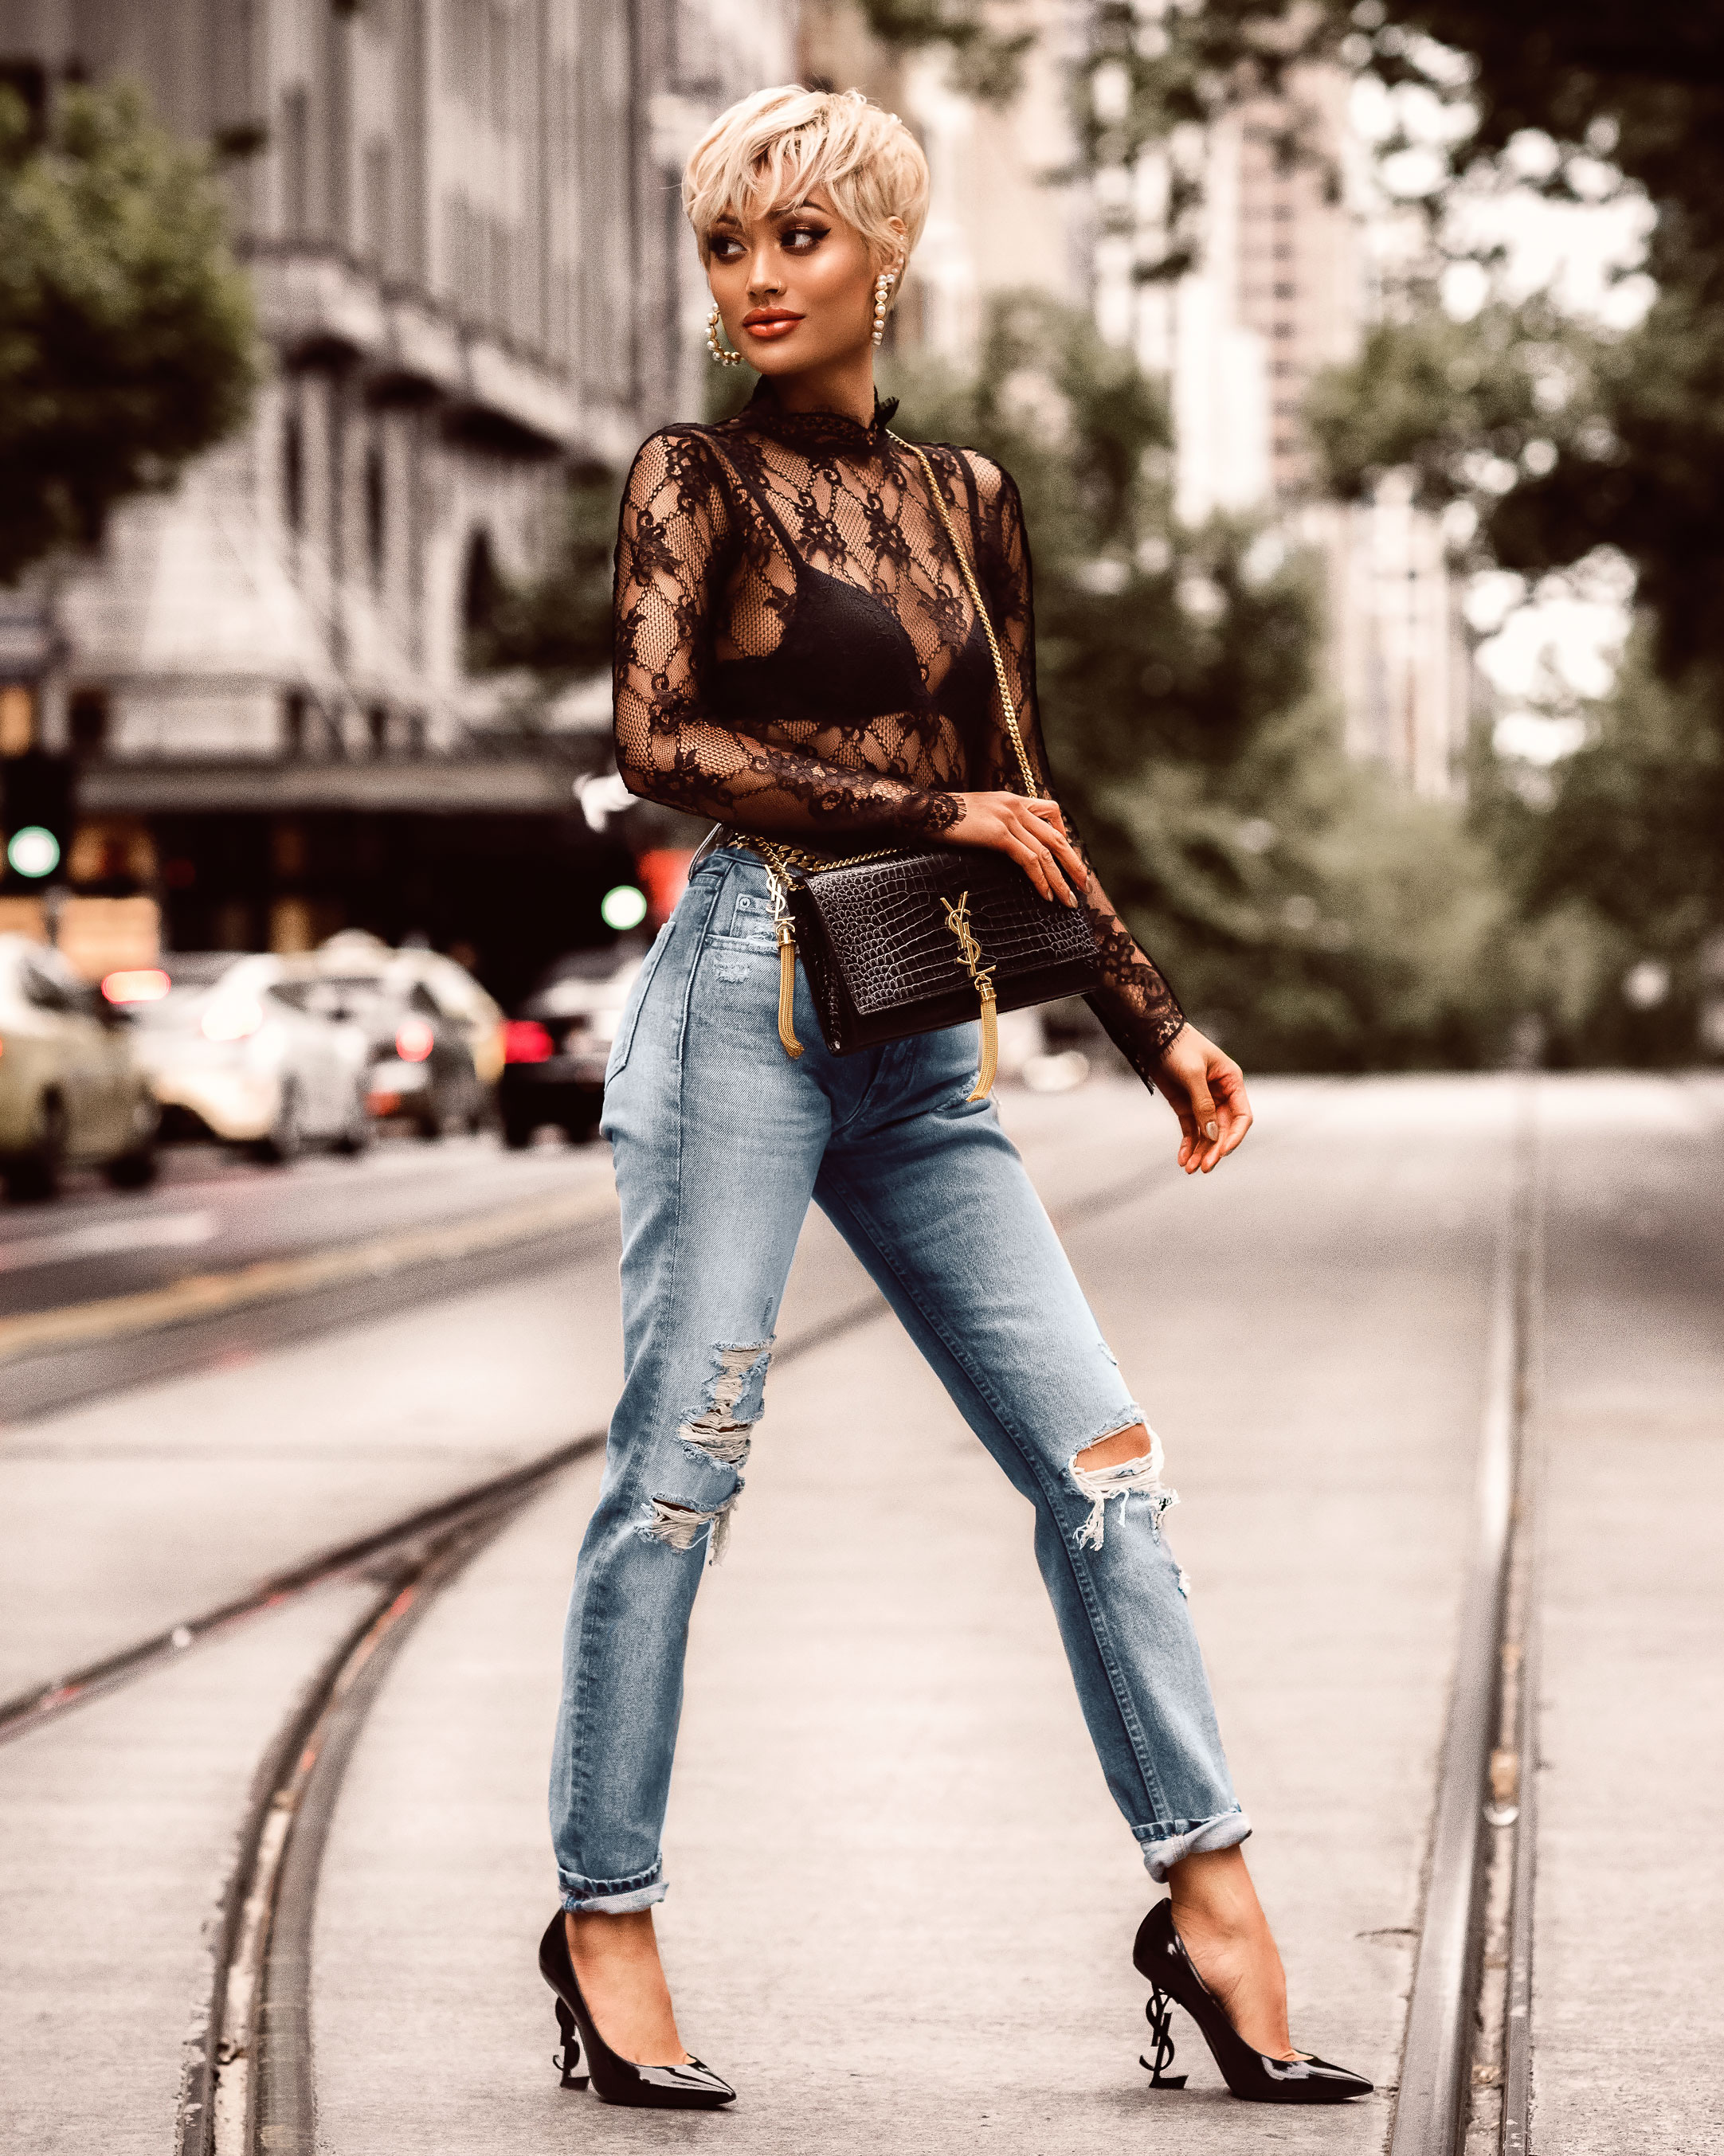 Micah-Gianneli-Australian-Melbourne-Fashion-Blogger-Influencer-Photography-Street-Style-Editorial-Luisaviaroma-YSL-Saint-Laurent-Opyum-Kate-Bag-Revolve-NBD-Grlfrnd-Designer-Luxury